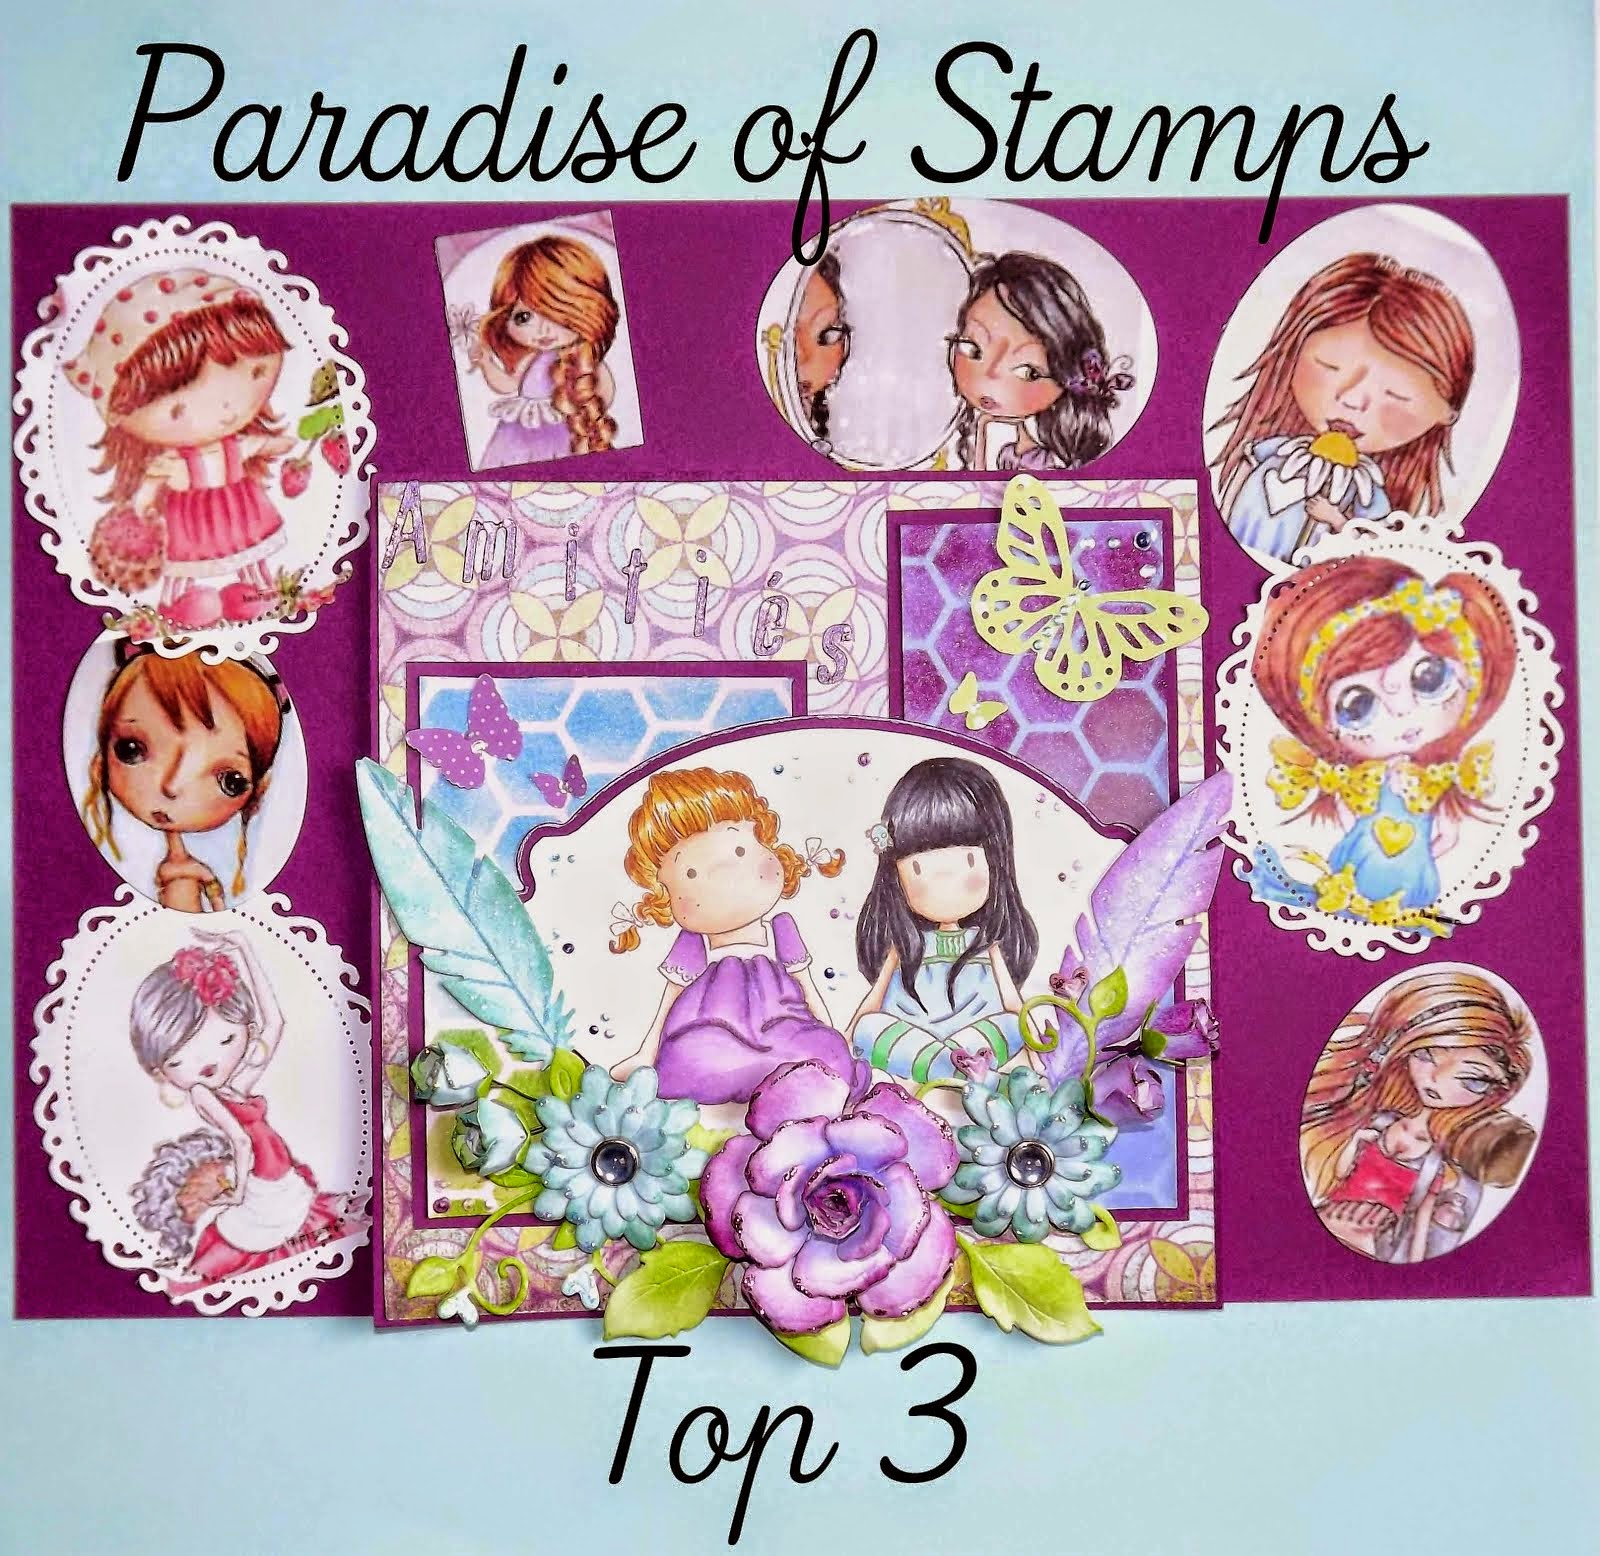 Top 3 Paradise of Stamps